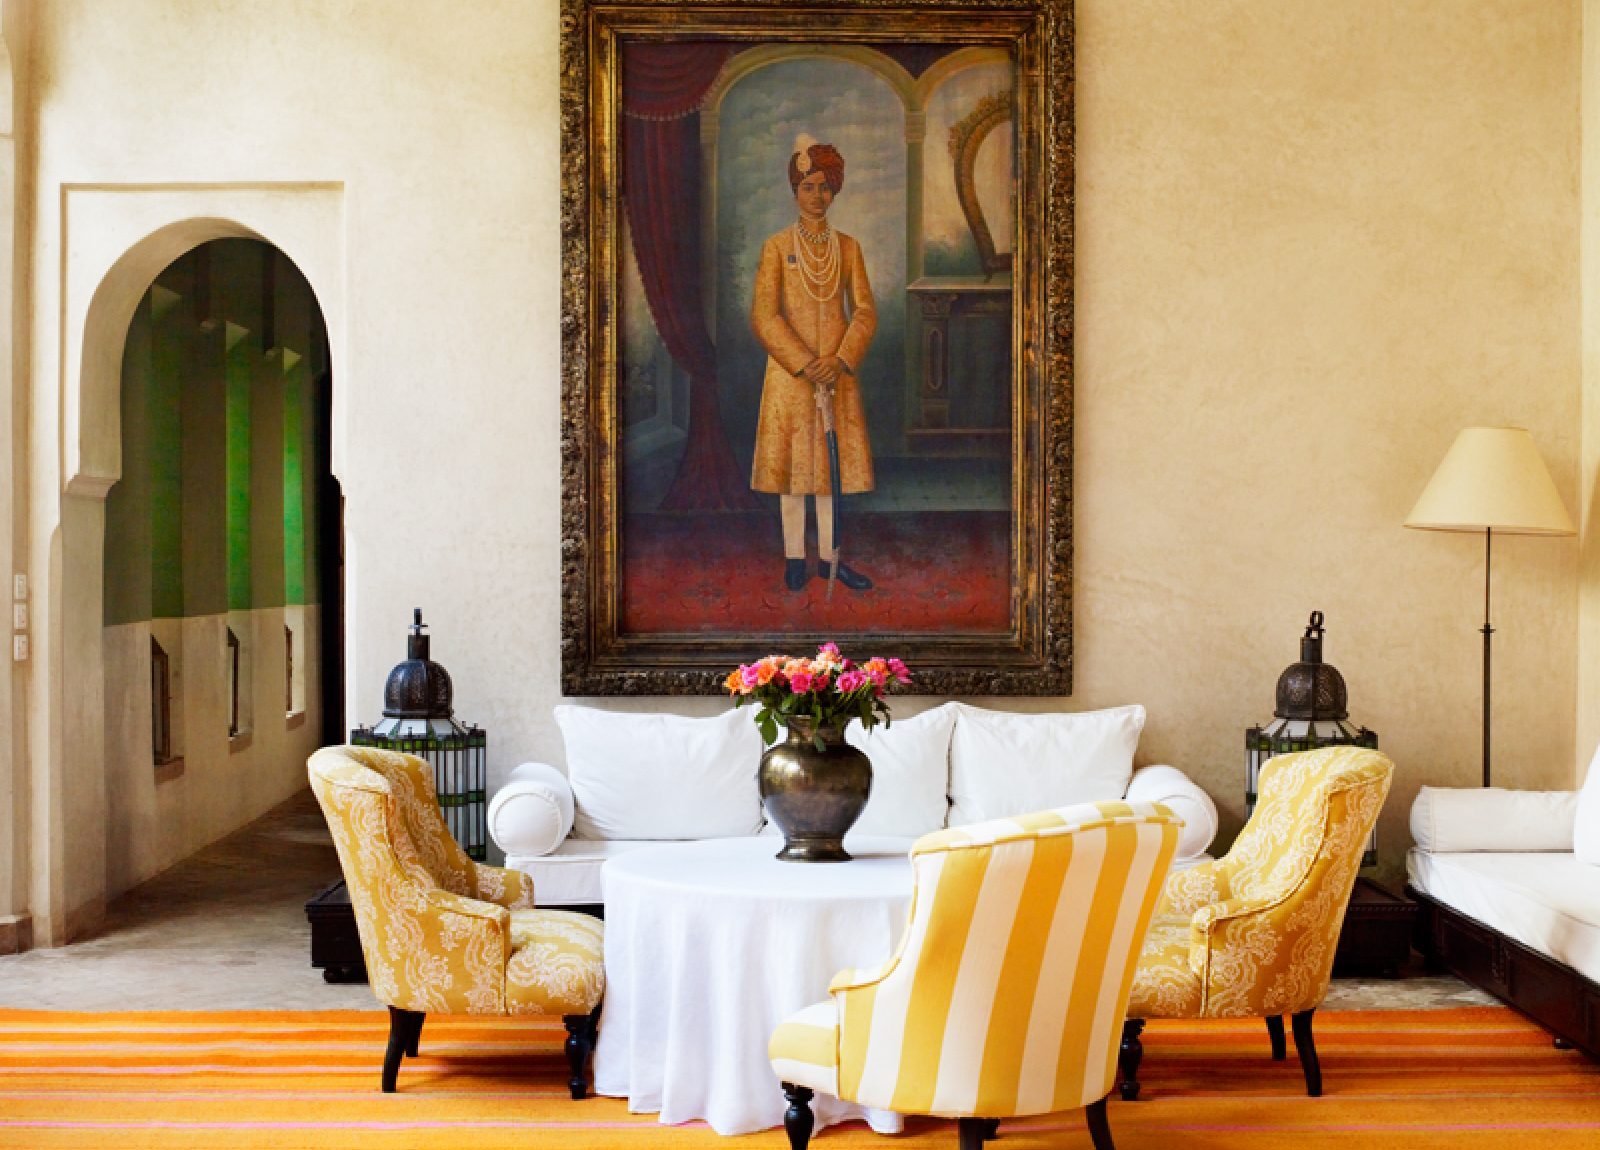 Enjoy 1930's glamour at L'Hôtel Marrakech 2